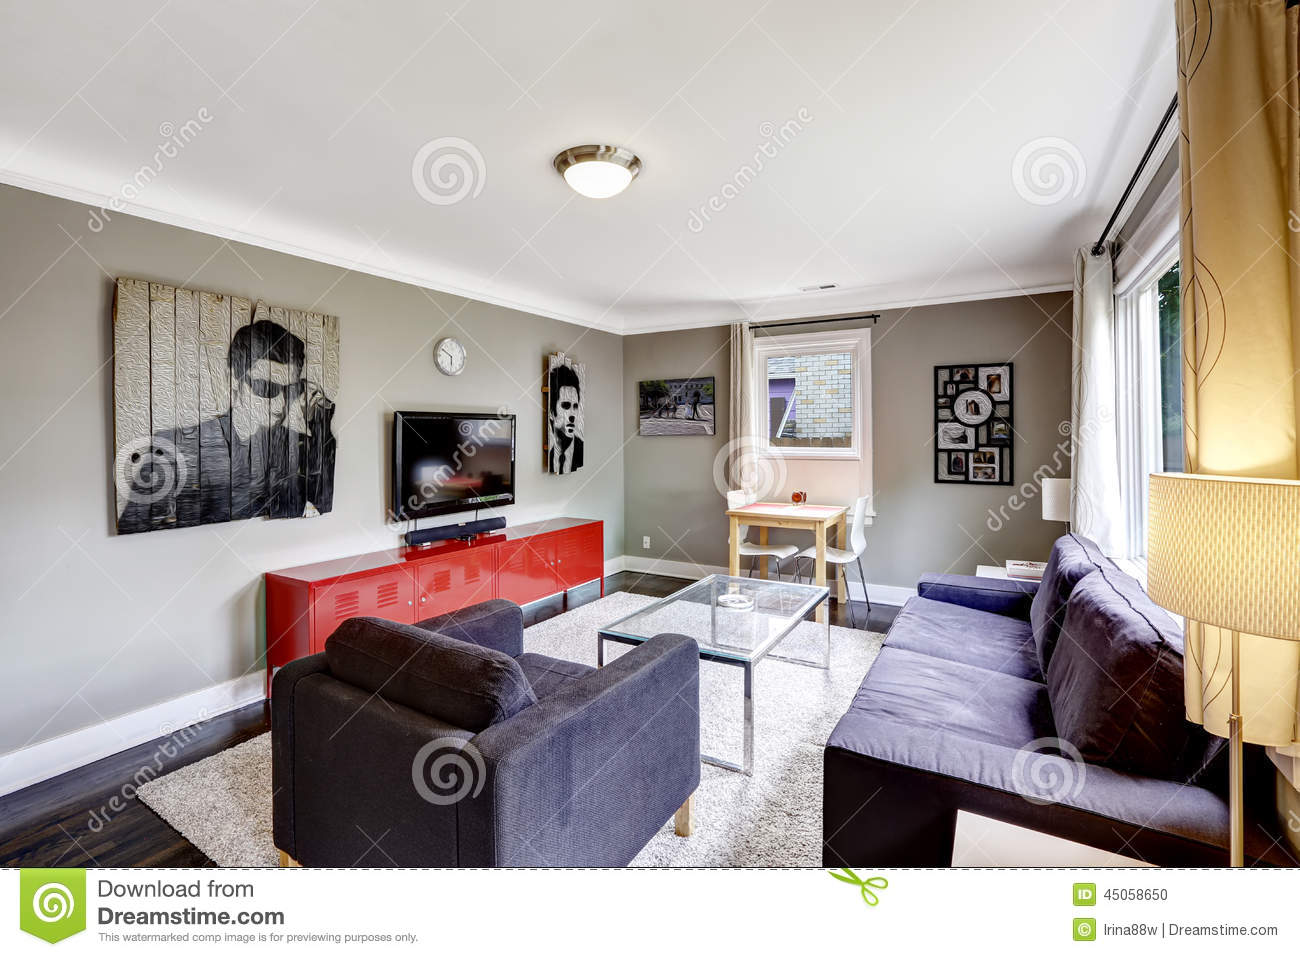 Light Grey Living Room With Bright Red Cabinet And Black Furnitu Stock Photo